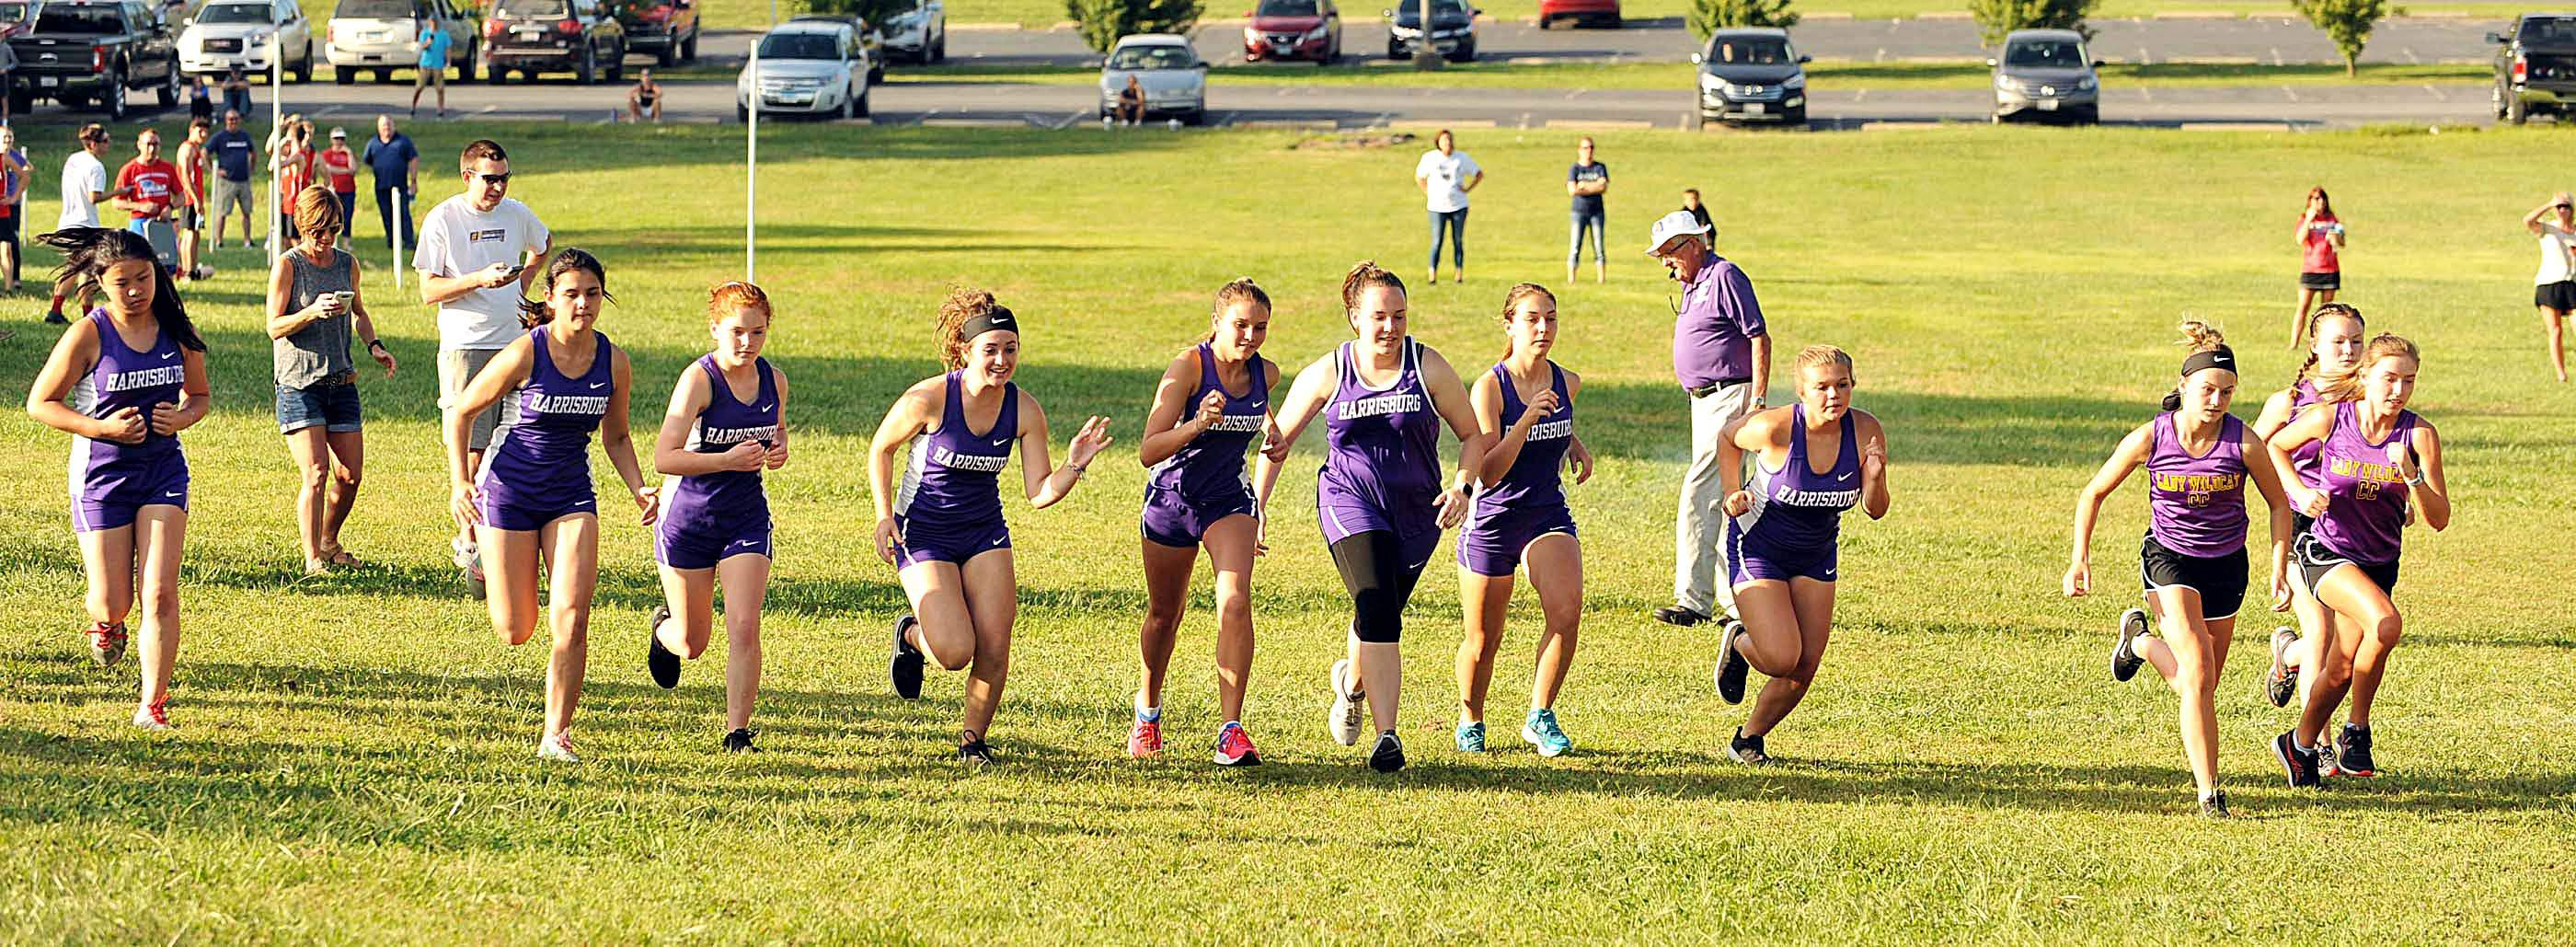 From left Harrisburg cross country runners Selina Wang, Sierra Winstead, Emily Jeffries, Hannah Reid, Shaunah Ballard, Claire McDermott, Maddie Johnson and Ashley Hurst join Carrier Mills-Stonefort runners at the start of Tuesday's Harrisburg Invitational at SIC.